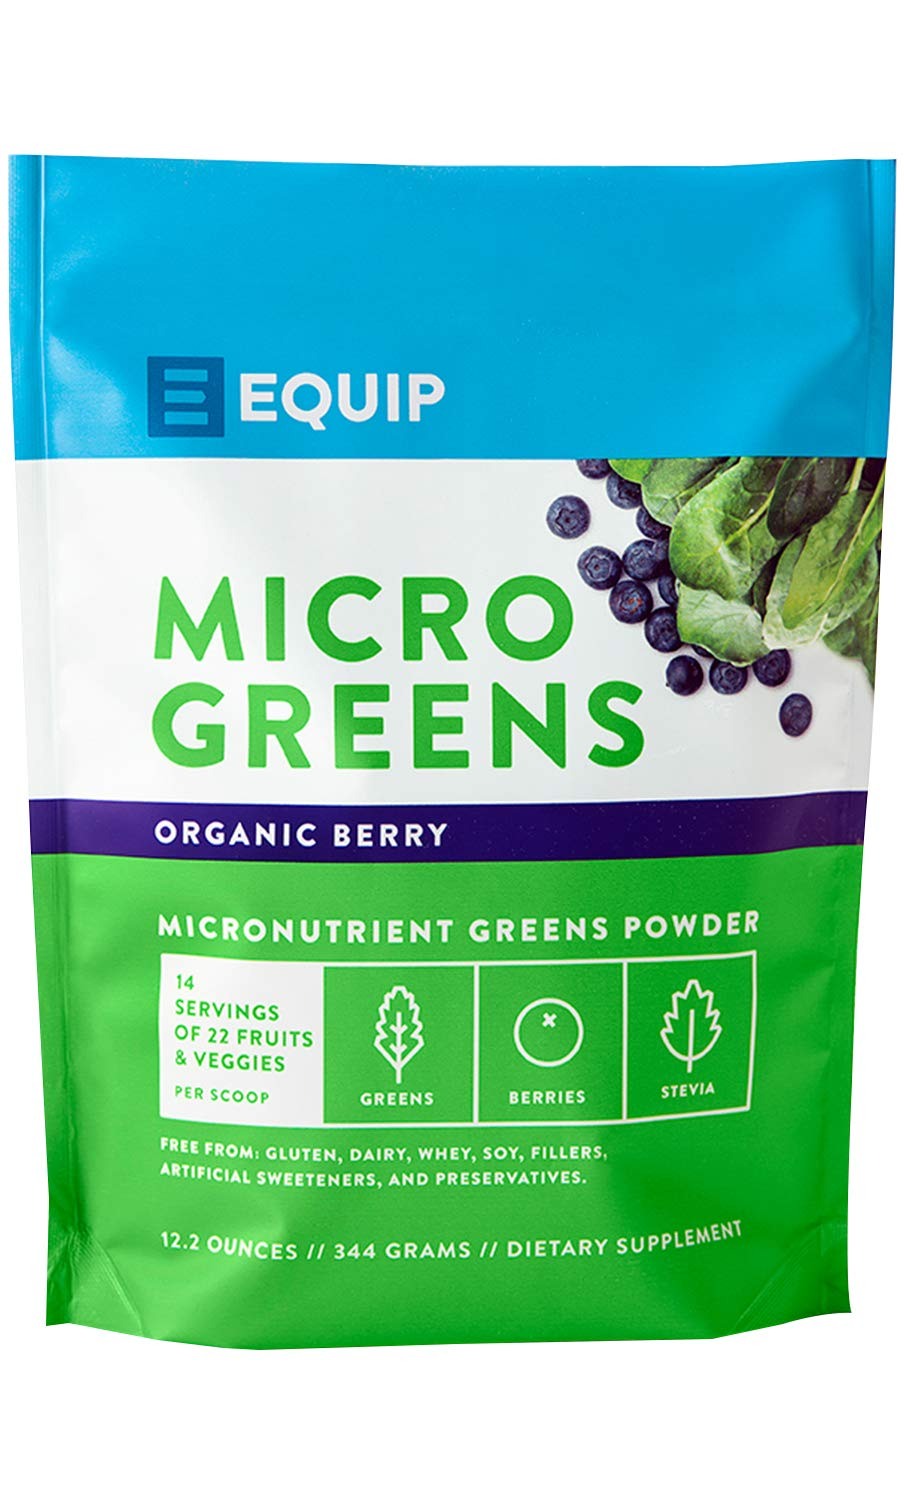 Organic Greens Superfood Powder Supplement: Best as Super Amazing Plant Based Juice Drink Mix Ideal for Athletic, Paleo, Vegan, Keto Diet. Raw Grass Power Vitamin Vibrance in Smoothies & Shakes by pureWOD